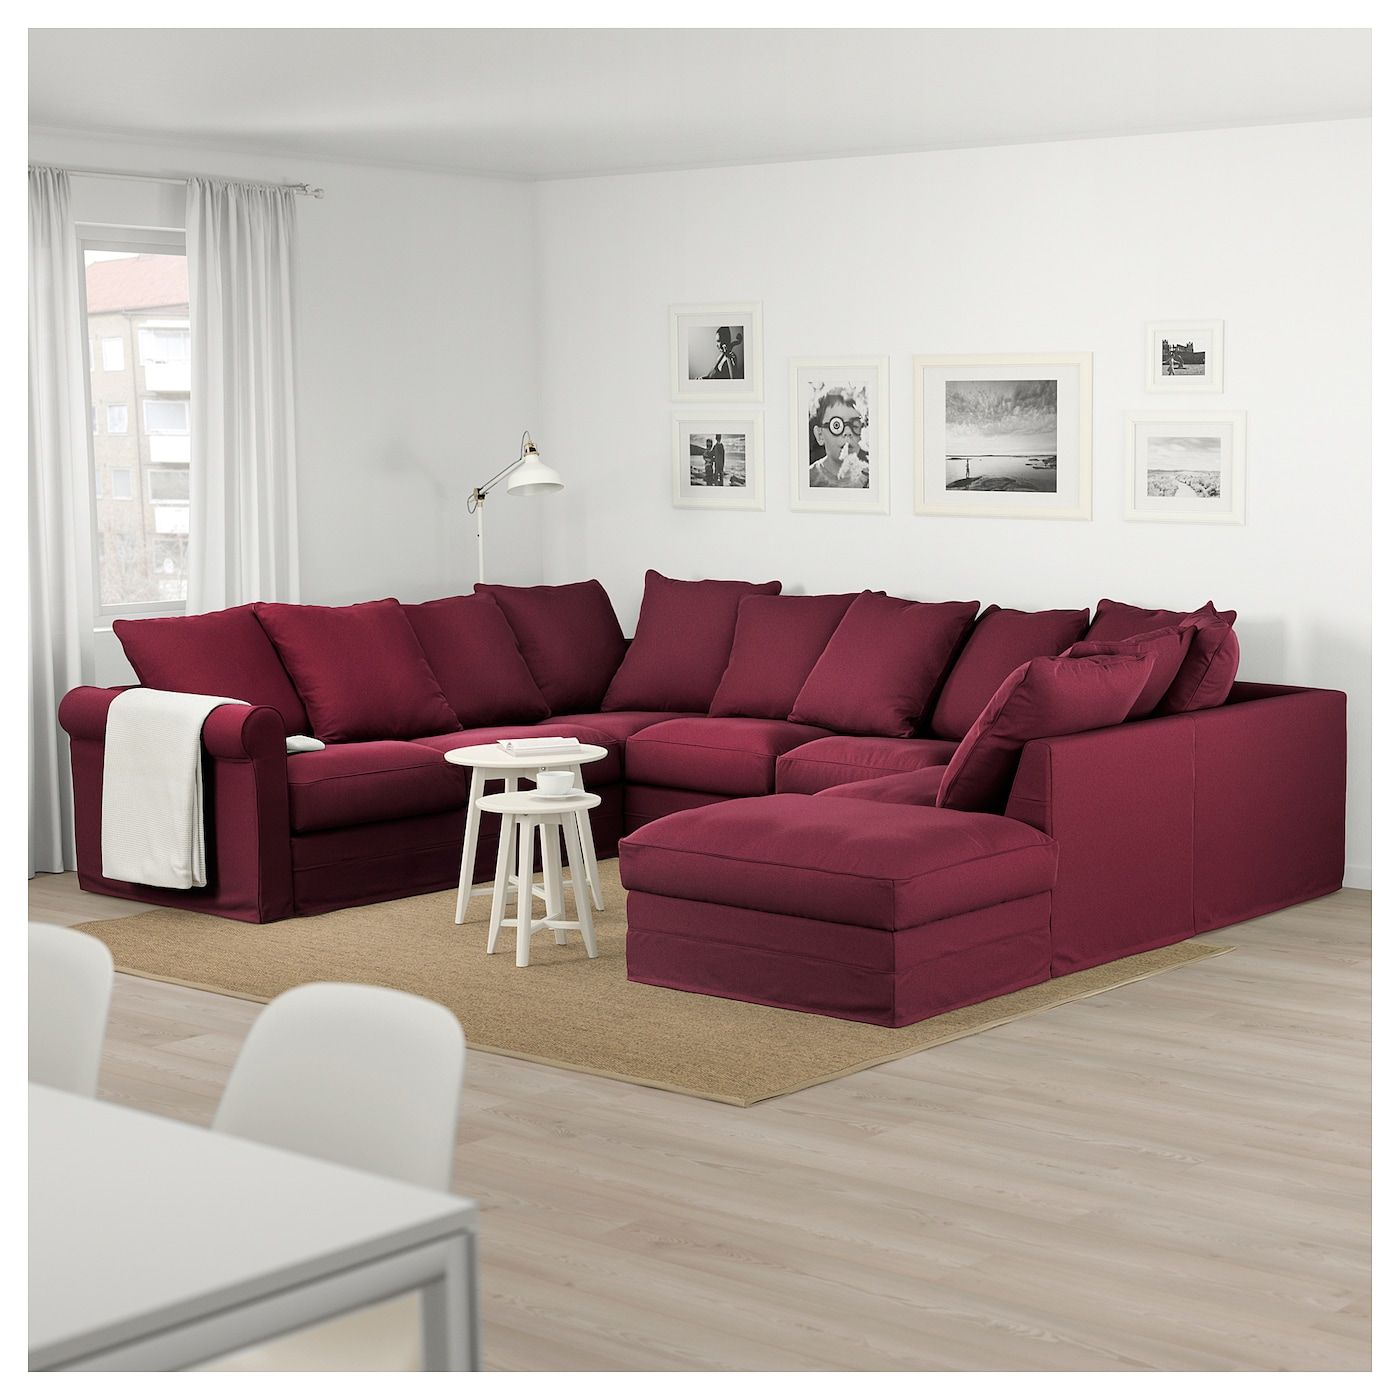 Inexpensive Cottage Style Living Room Furniture From Ikea: Furniture & Home Furnishings - Find Your Inspiration